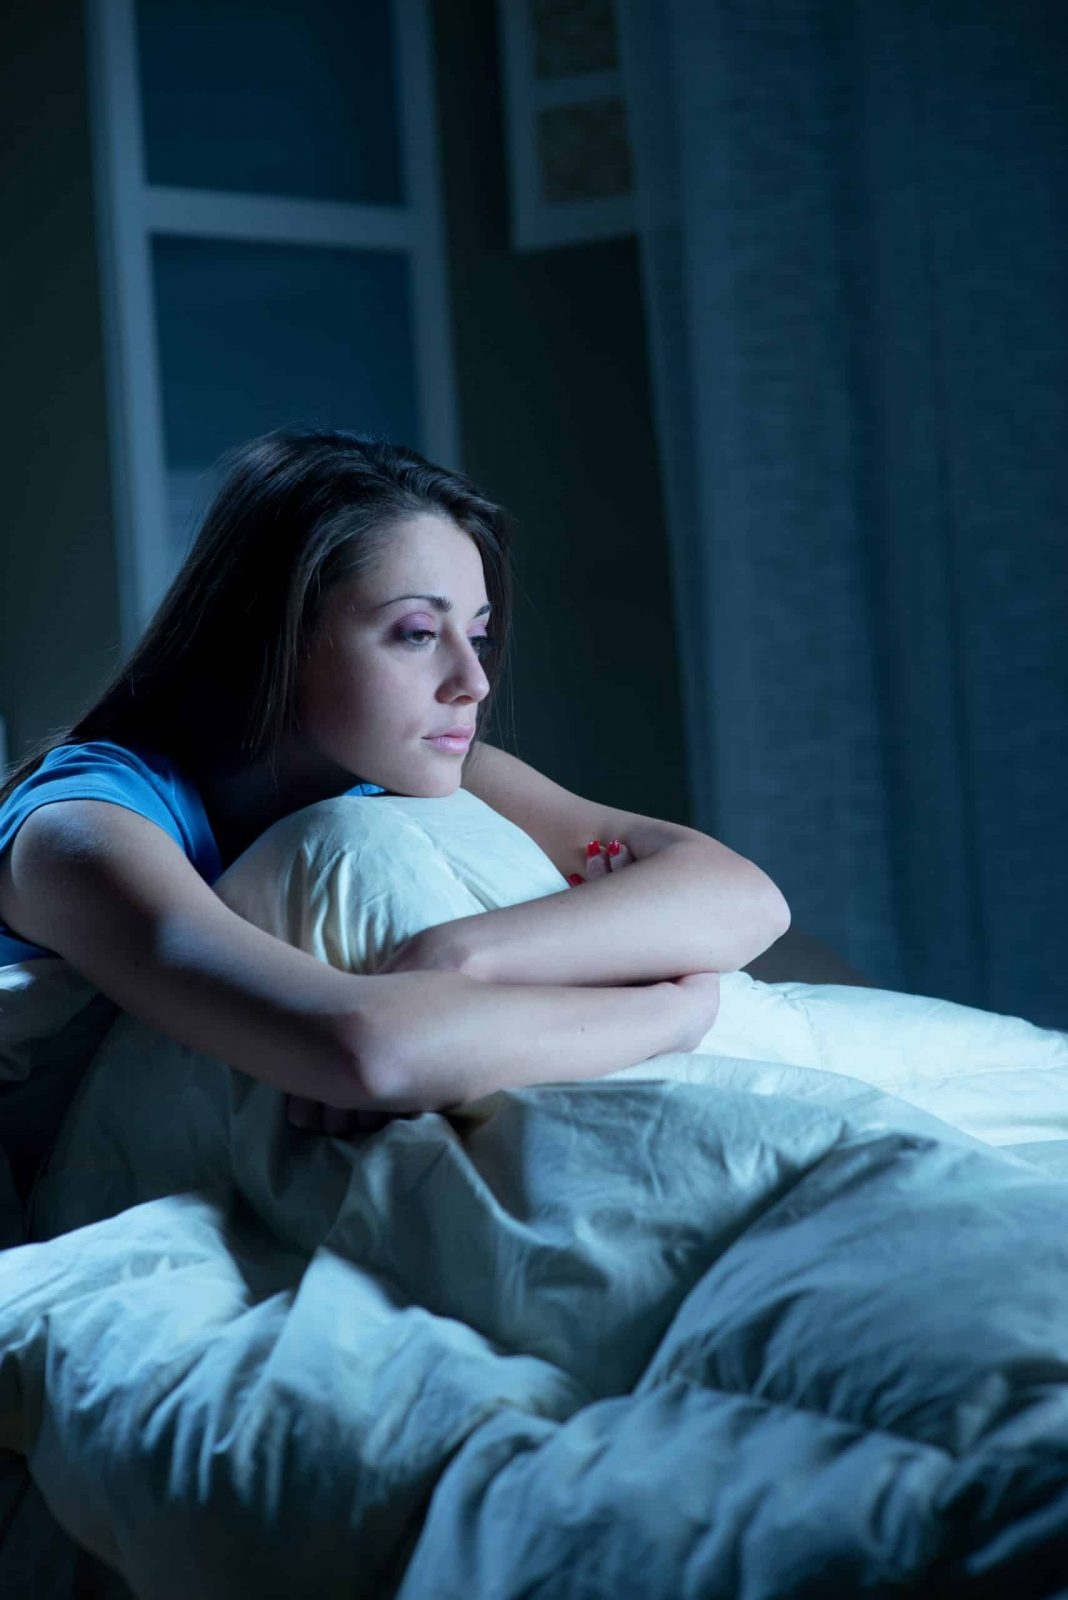 menopause symptoms treatment in london. Hot flushes and insomnia can be treated. Hormone Replacement therapy and HRT.